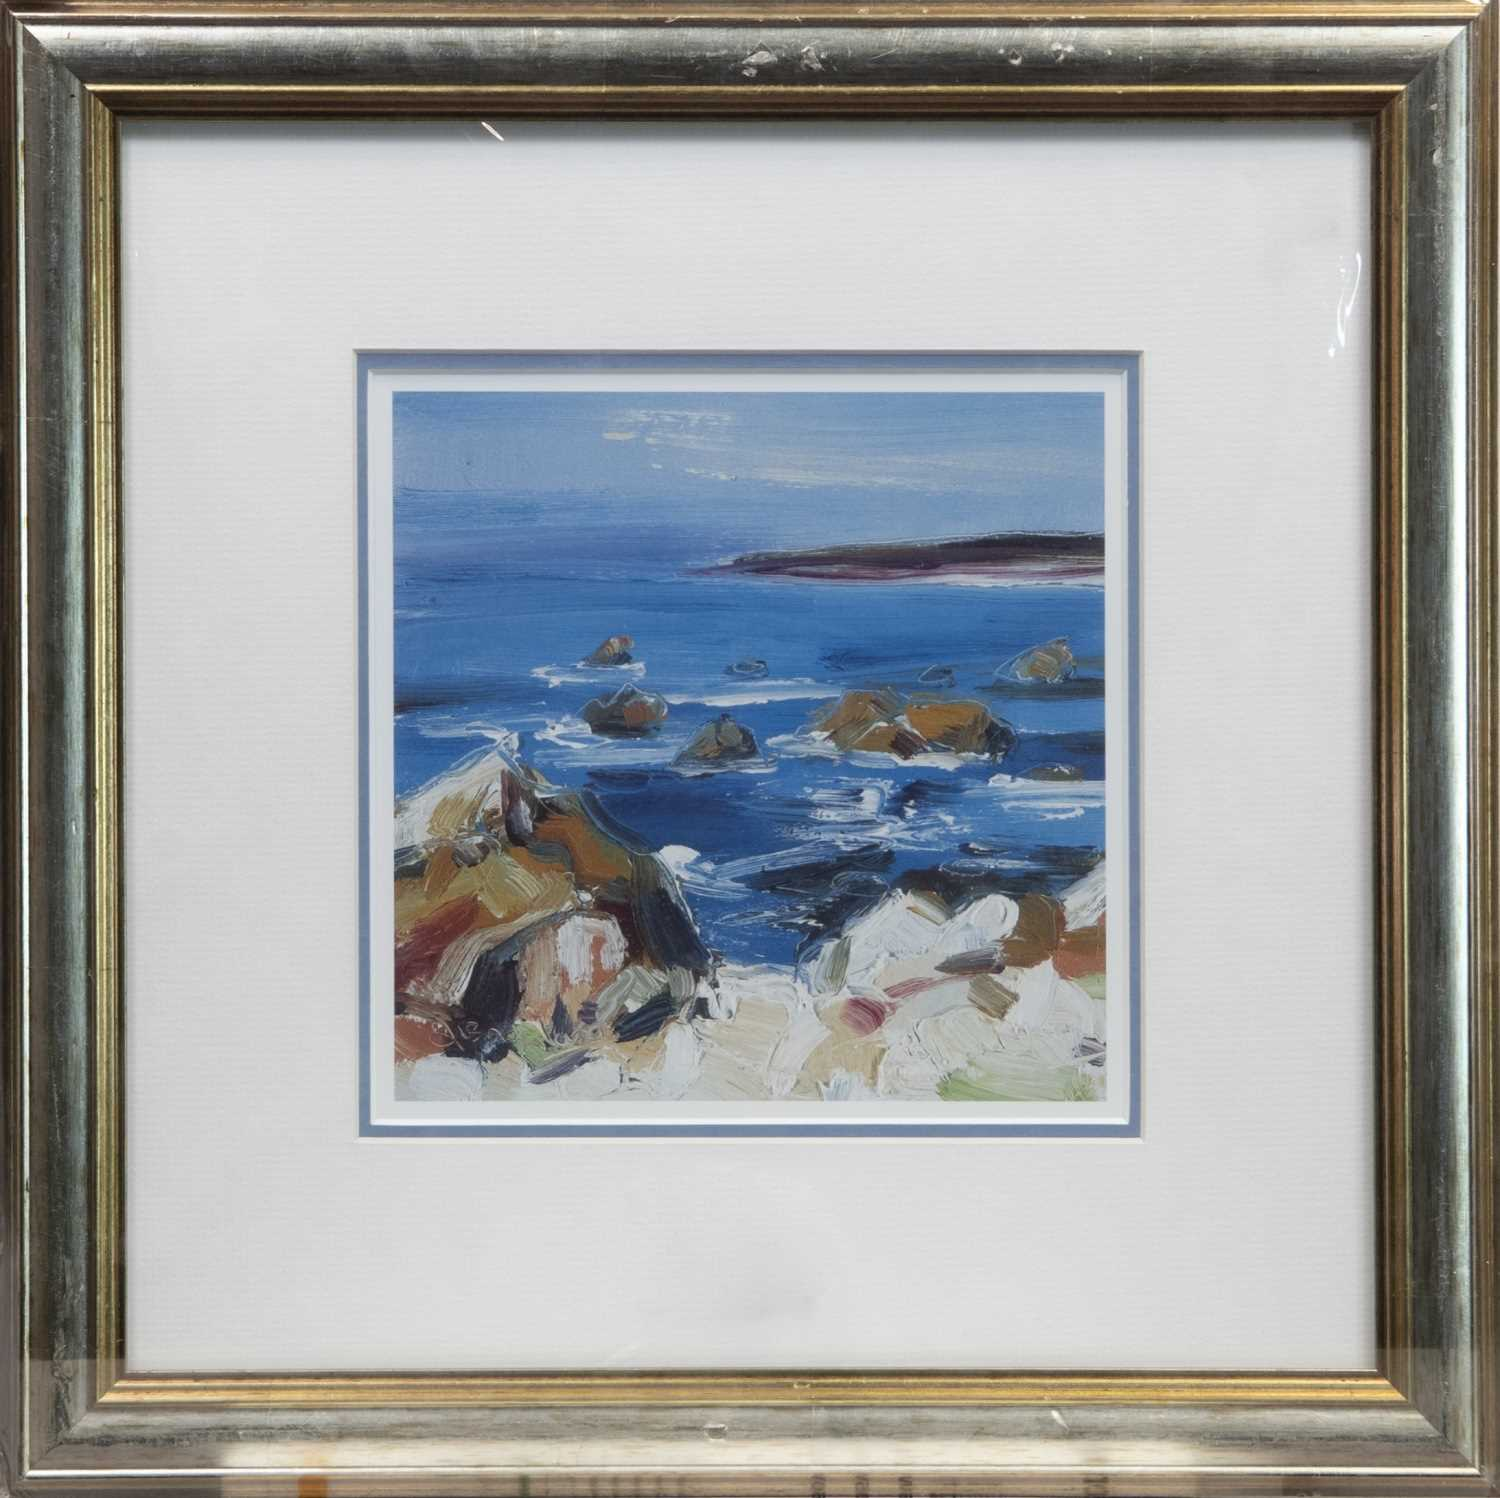 Lot 149 - ROCK POOL, A FRAMED PRINT